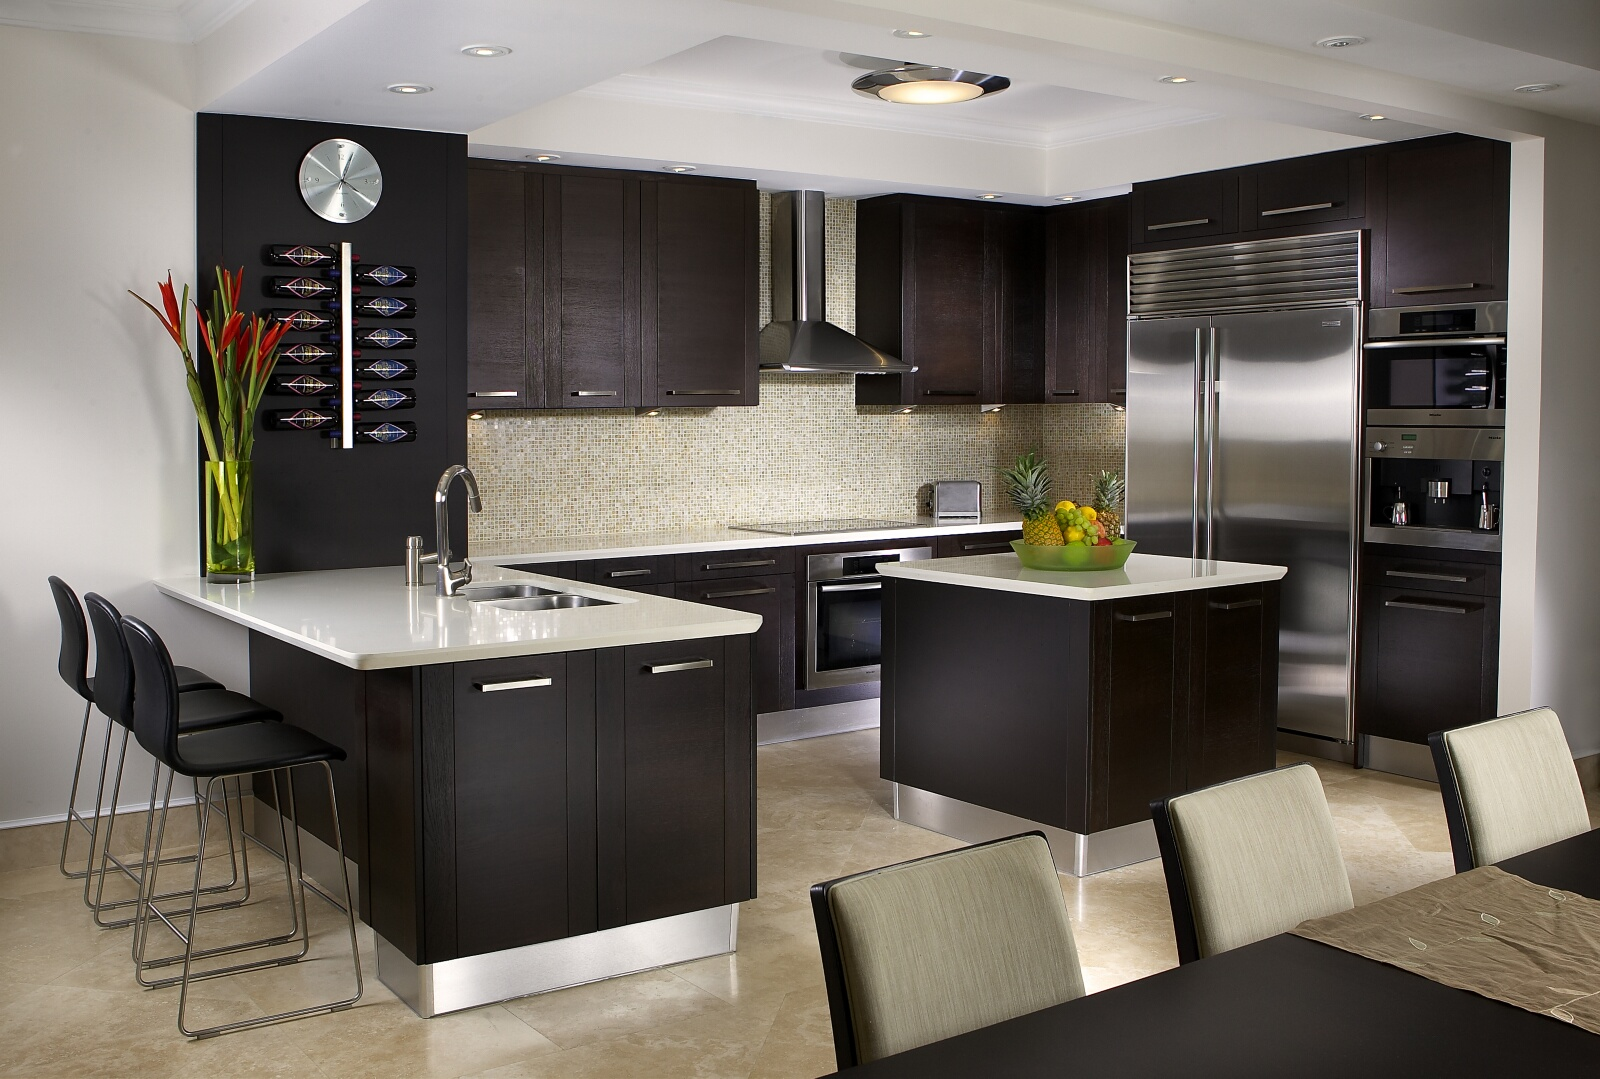 kitchen interior design image kitchen interior design services miami florida 997